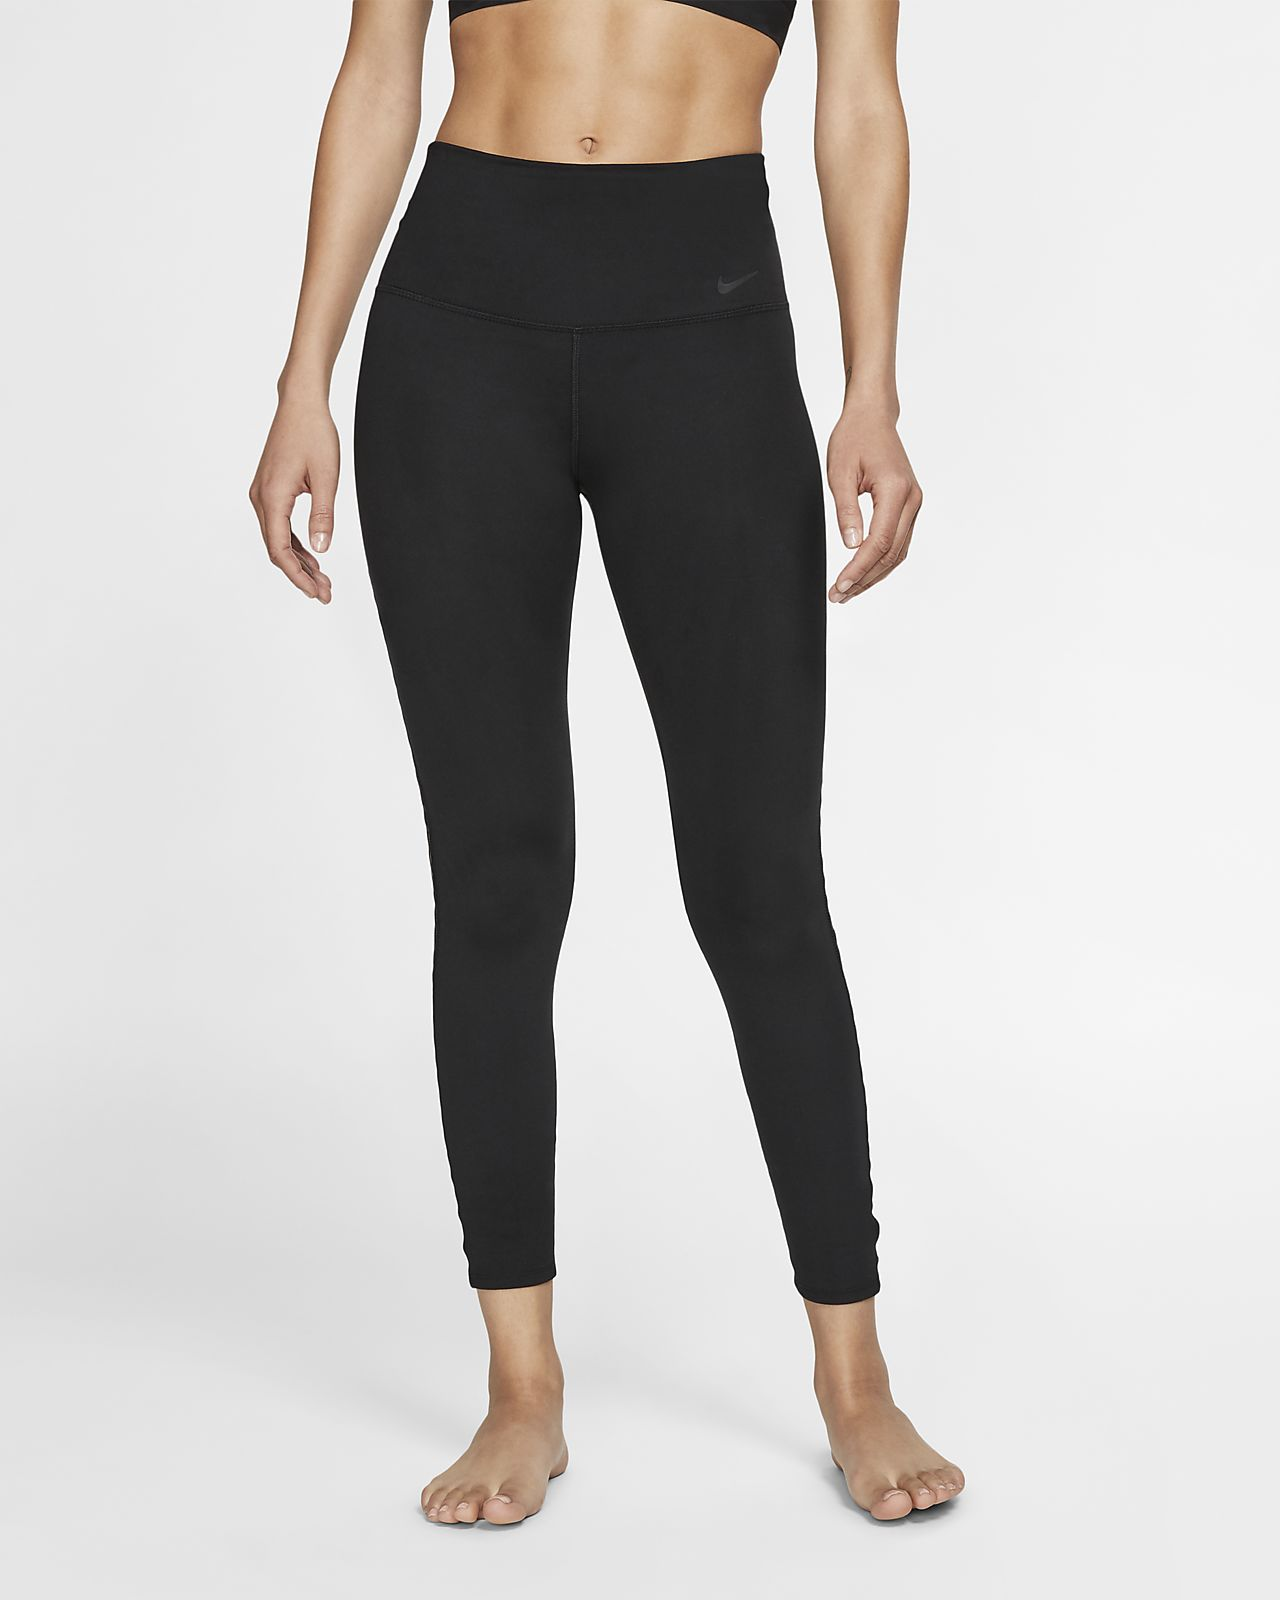 768631e512eae Nike Dri-FIT Power Women's 7/8 Yoga Training Tights. Nike.com AE